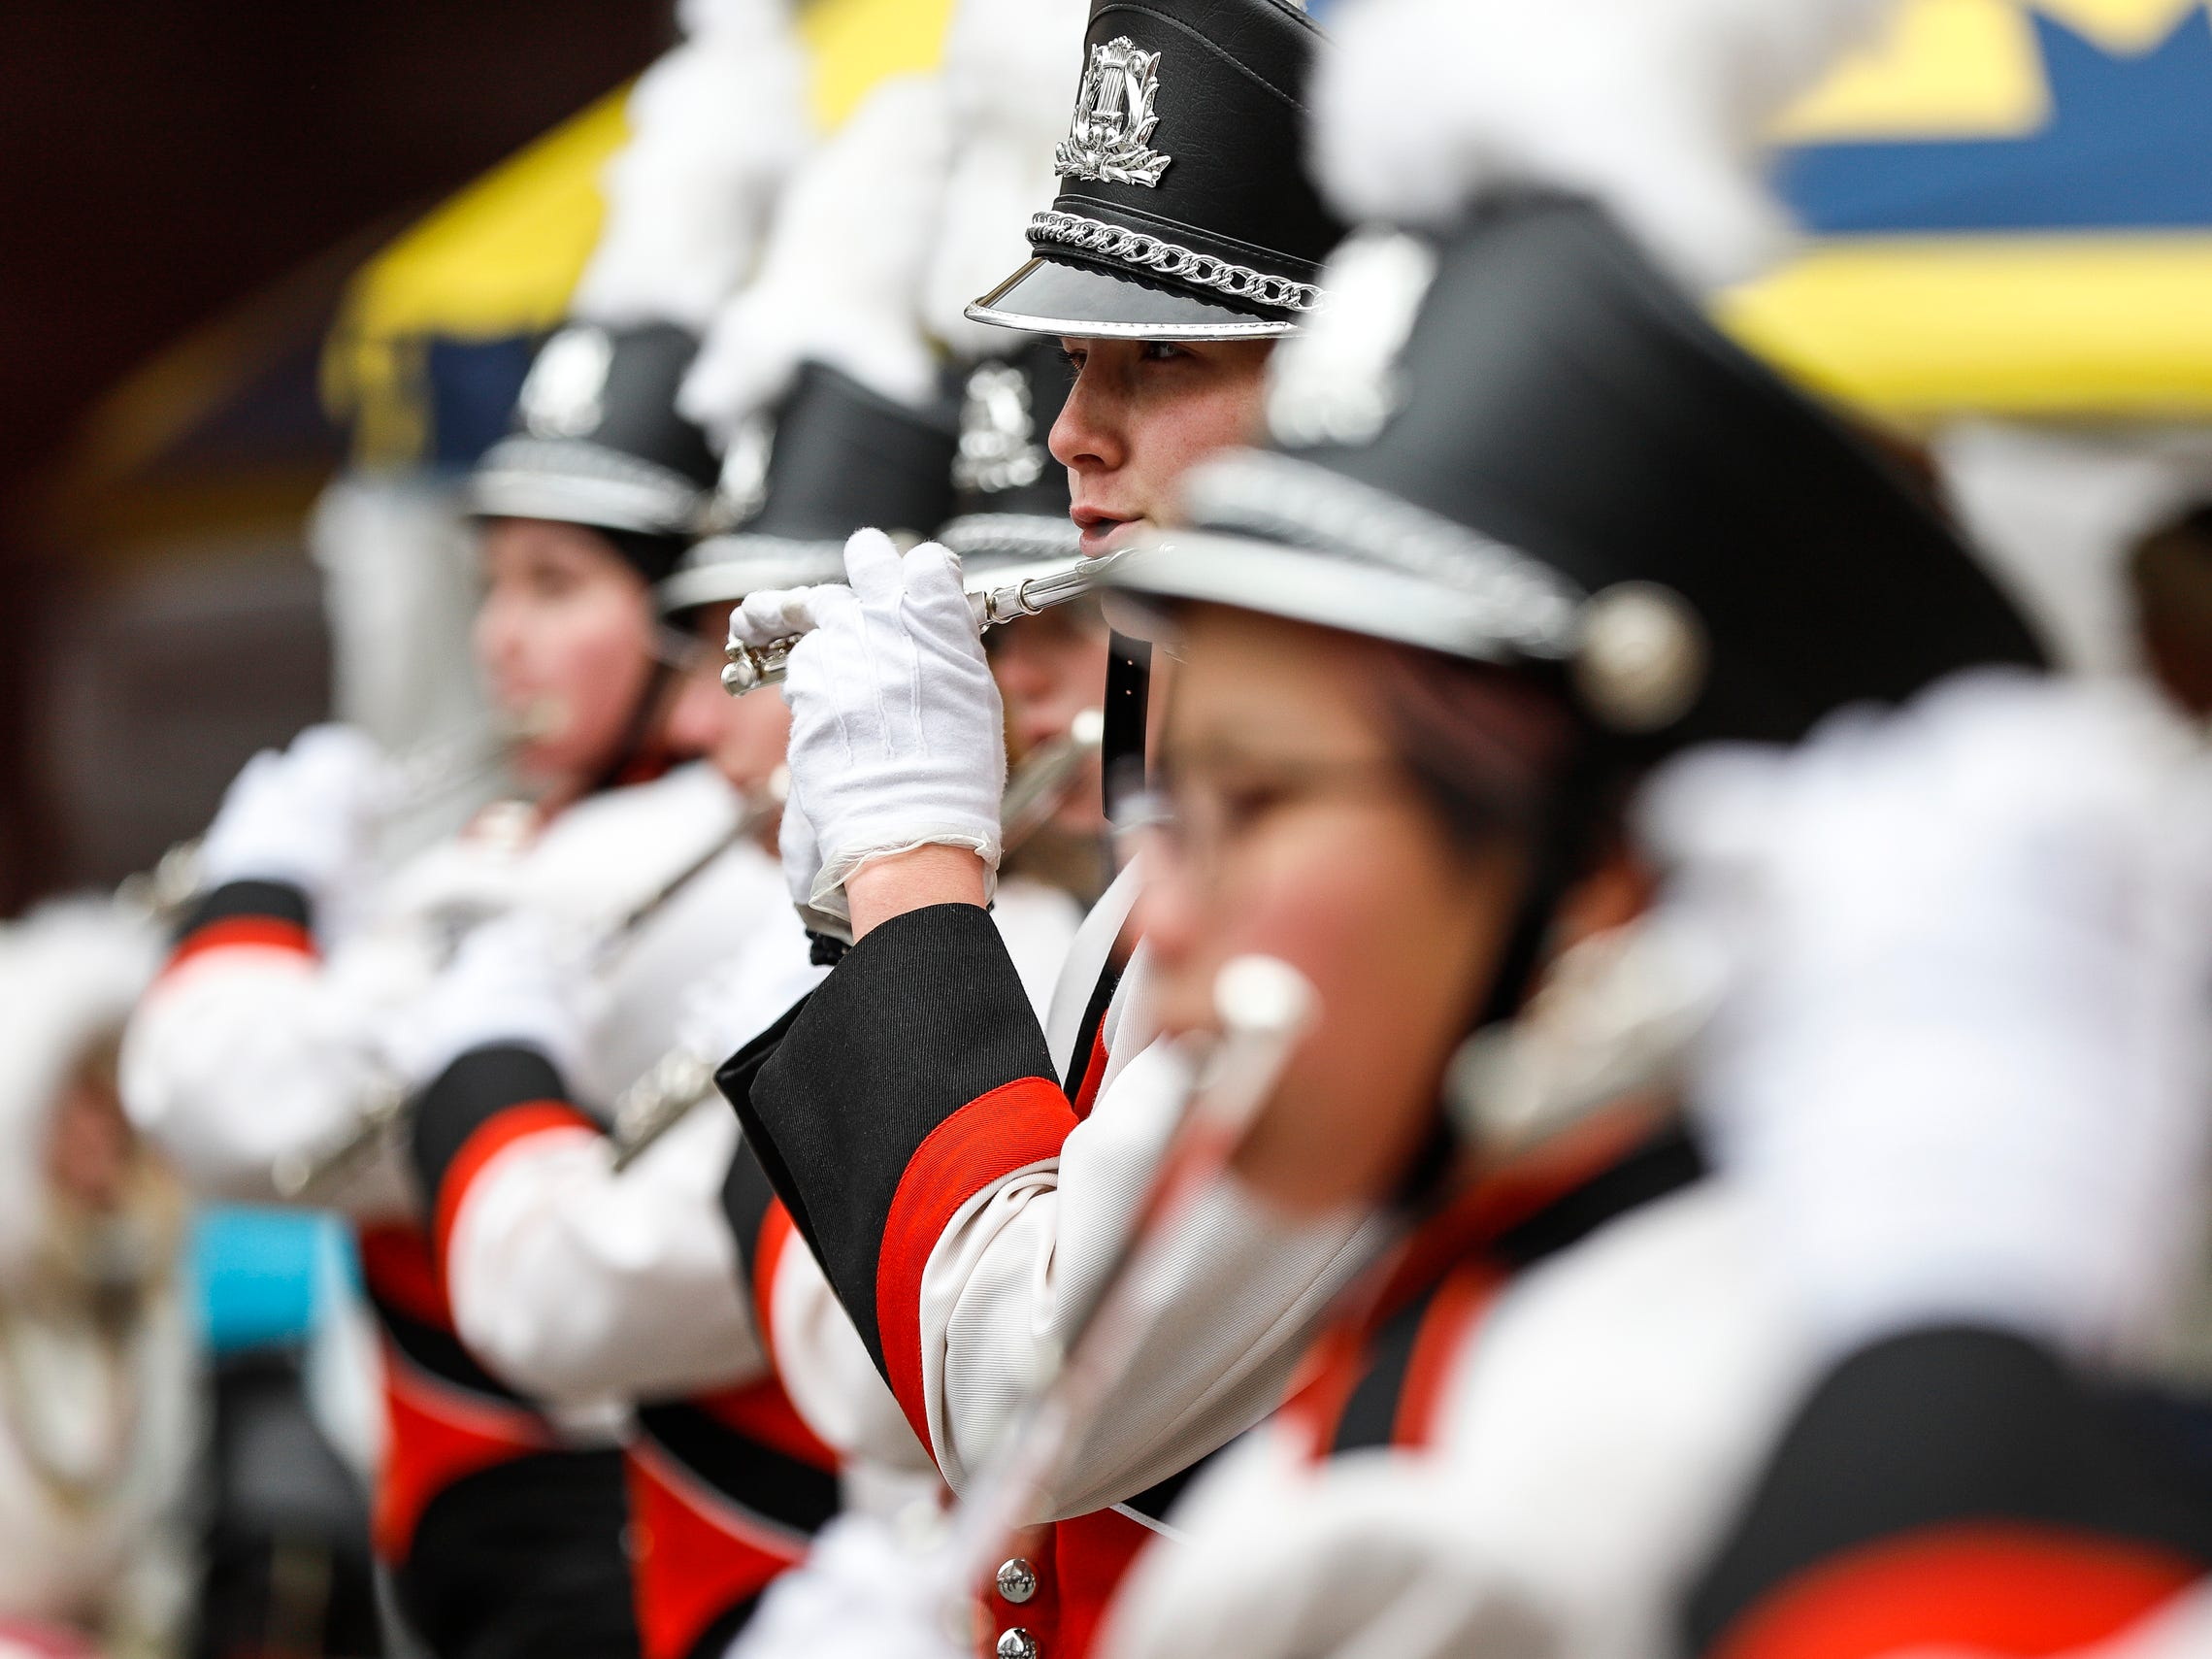 Brighton High School marching band members makes their way down Woodward Avenue during the 92nd America's Thanksgiving Day Parade in Detroit, Thursday, Nov. 22, 2018.